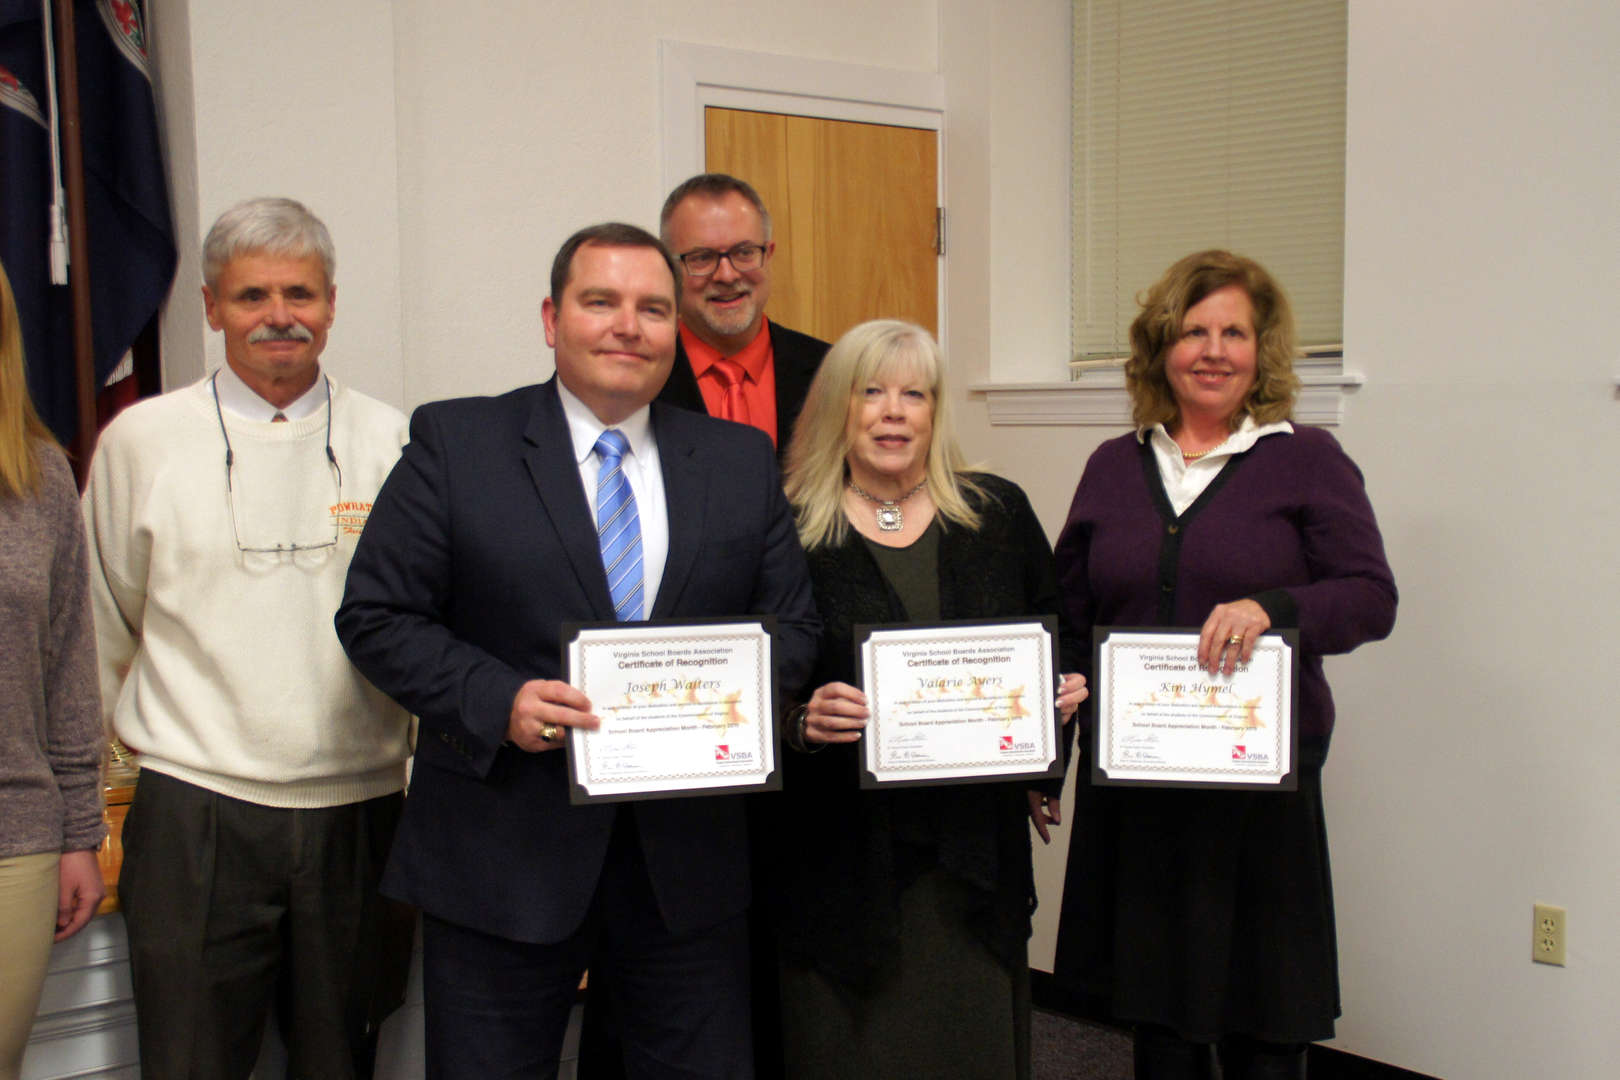 School Board Members recognized for School Board Appreciation Month